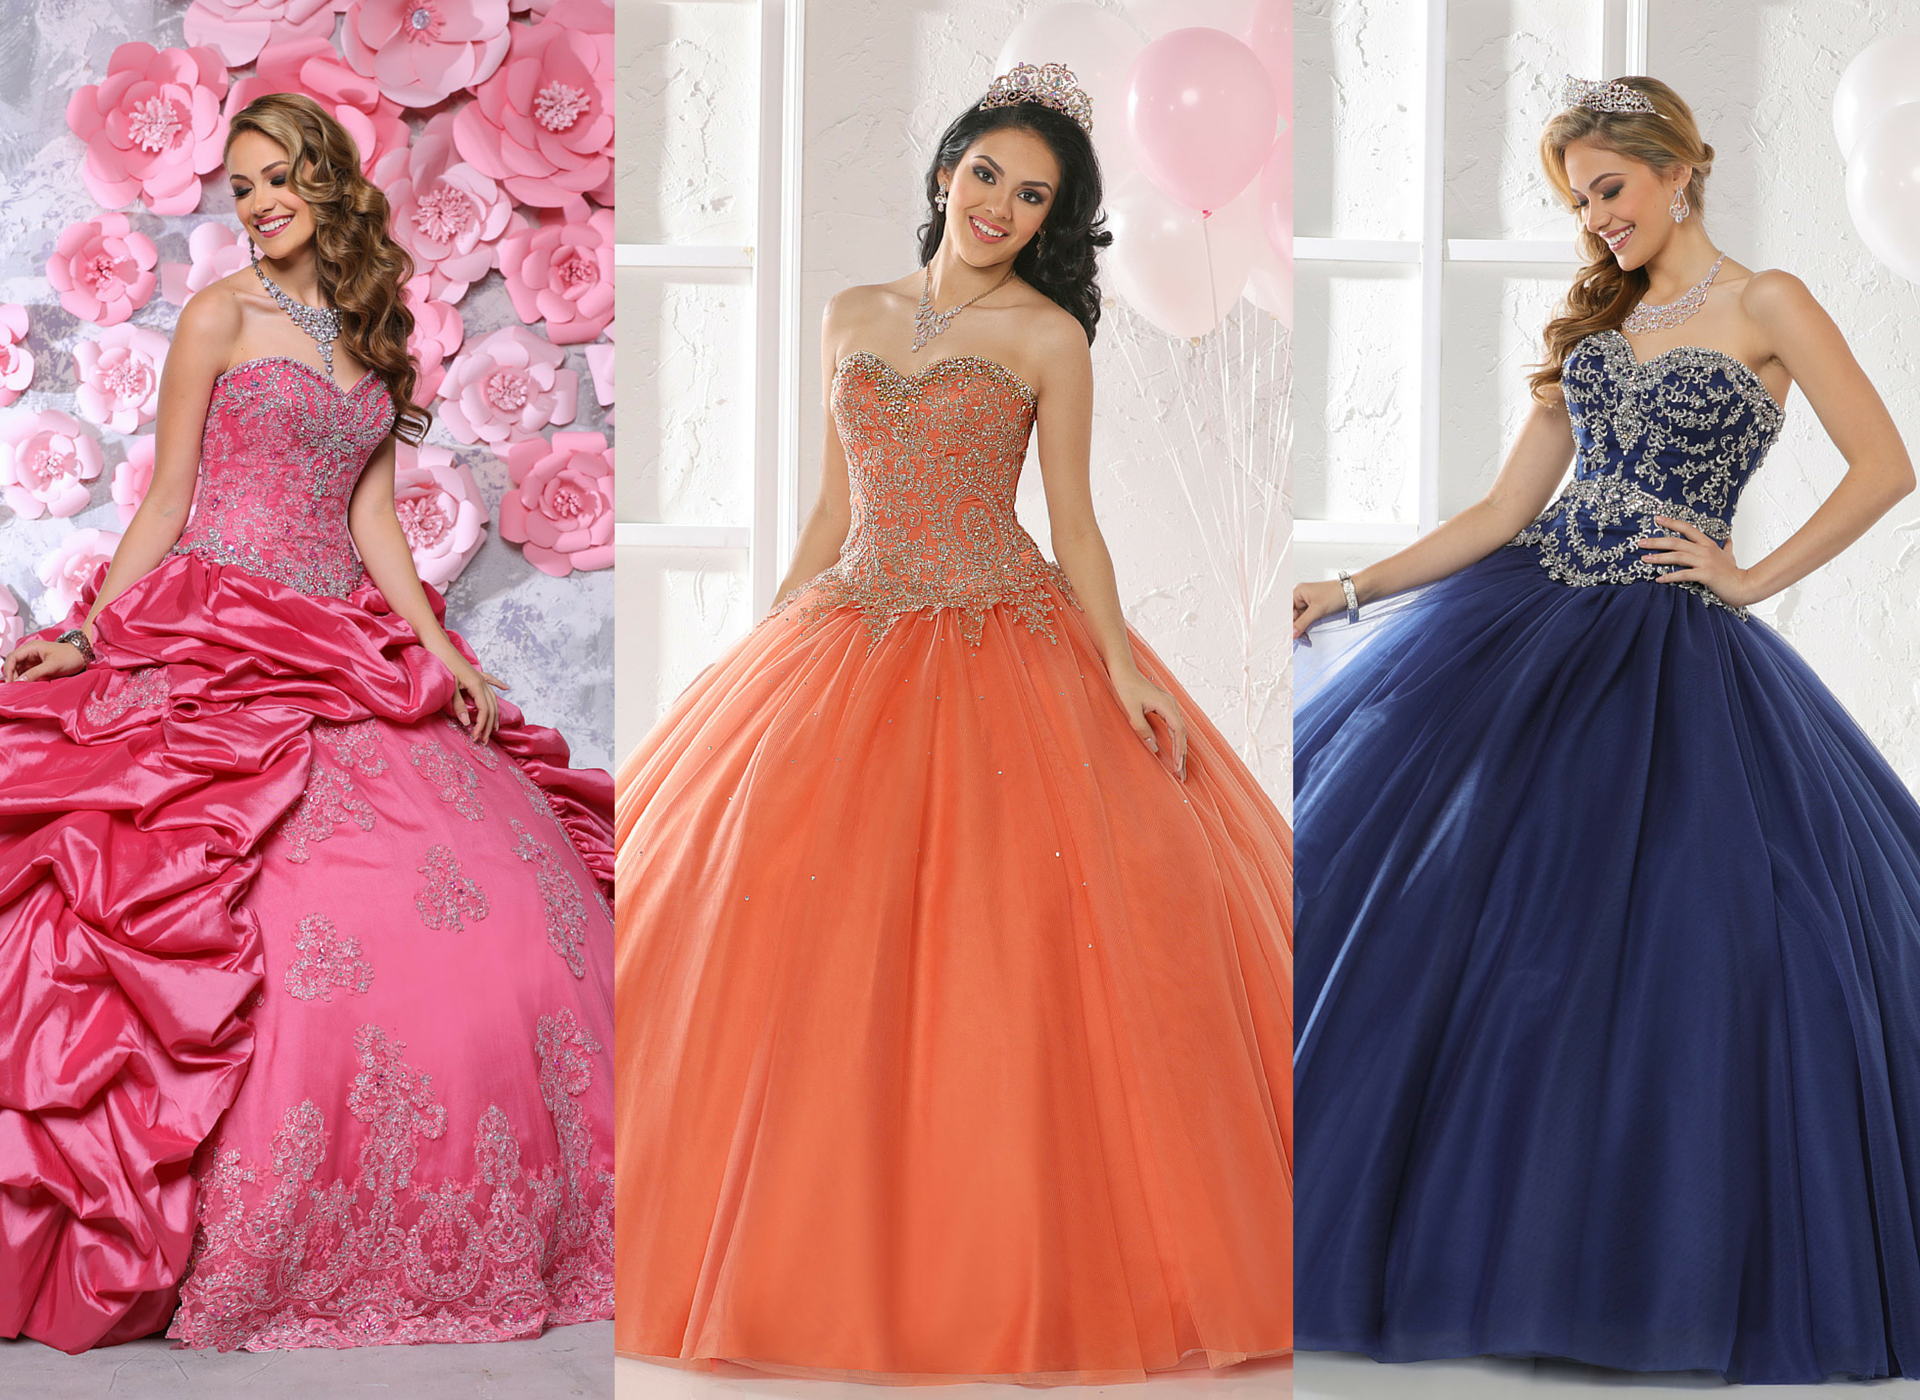 dresses friends wear to a quinceanera